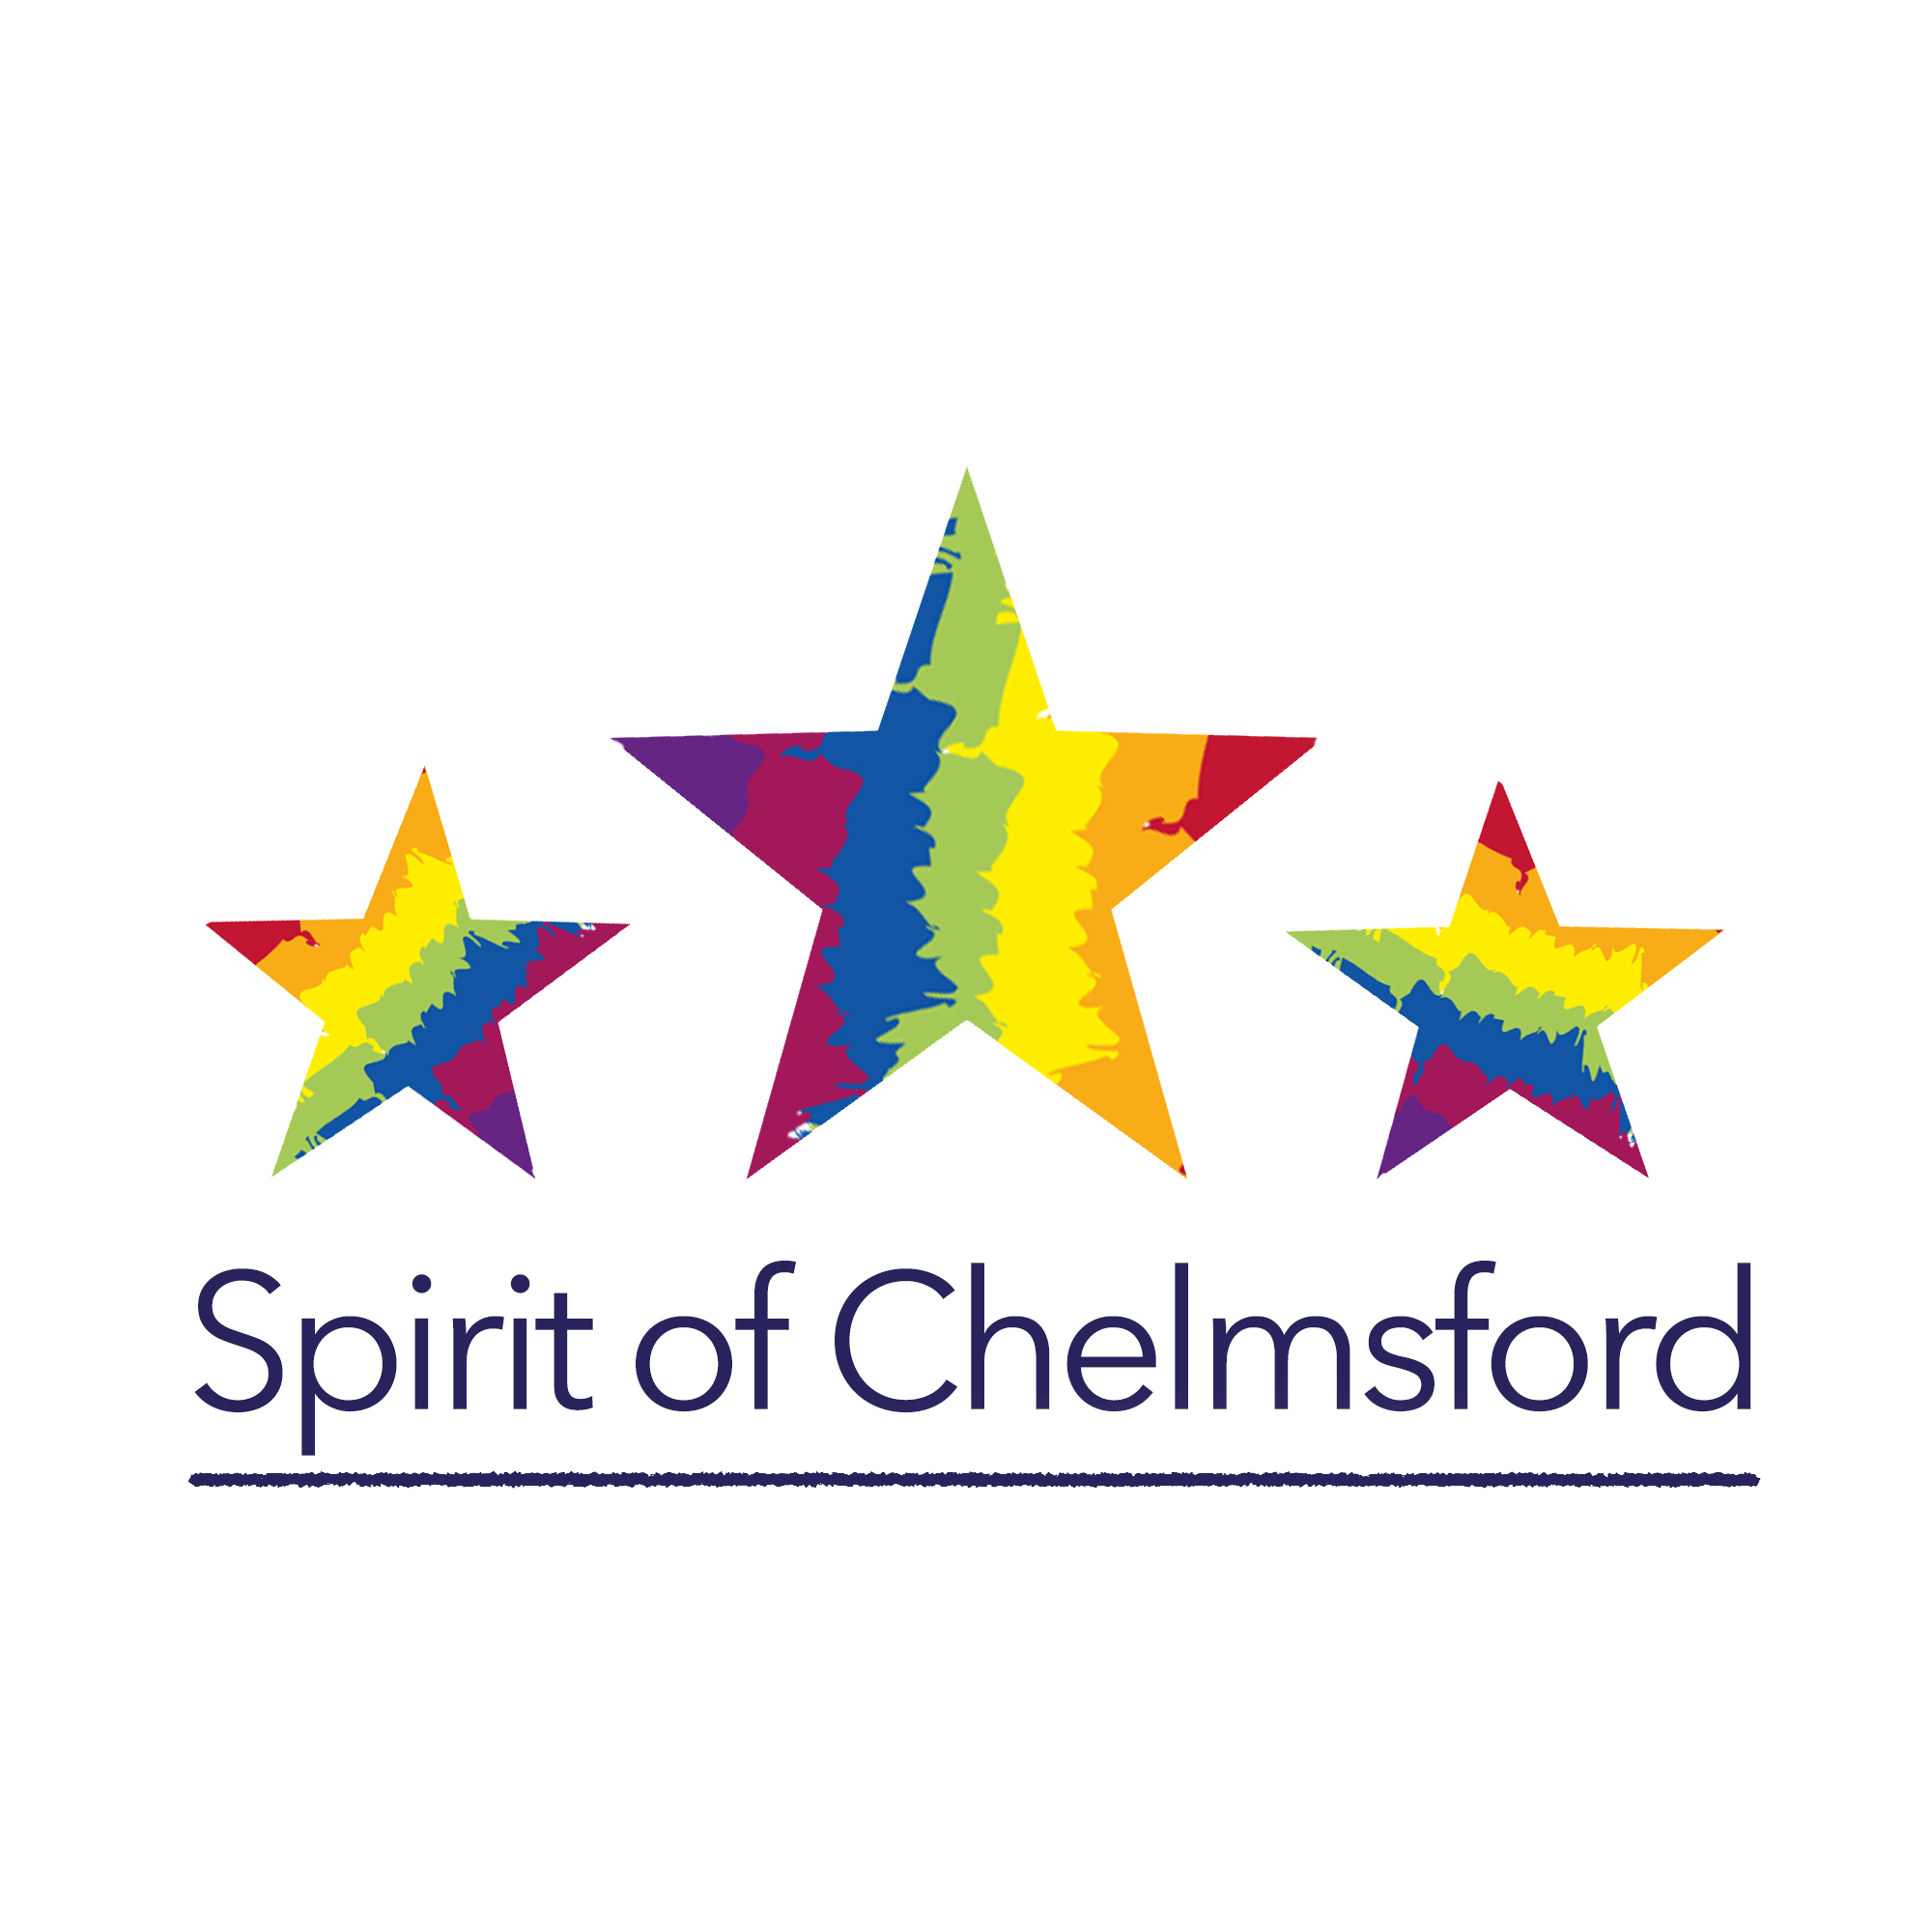 Campaign celebrating community spirit launched in Chelmsford